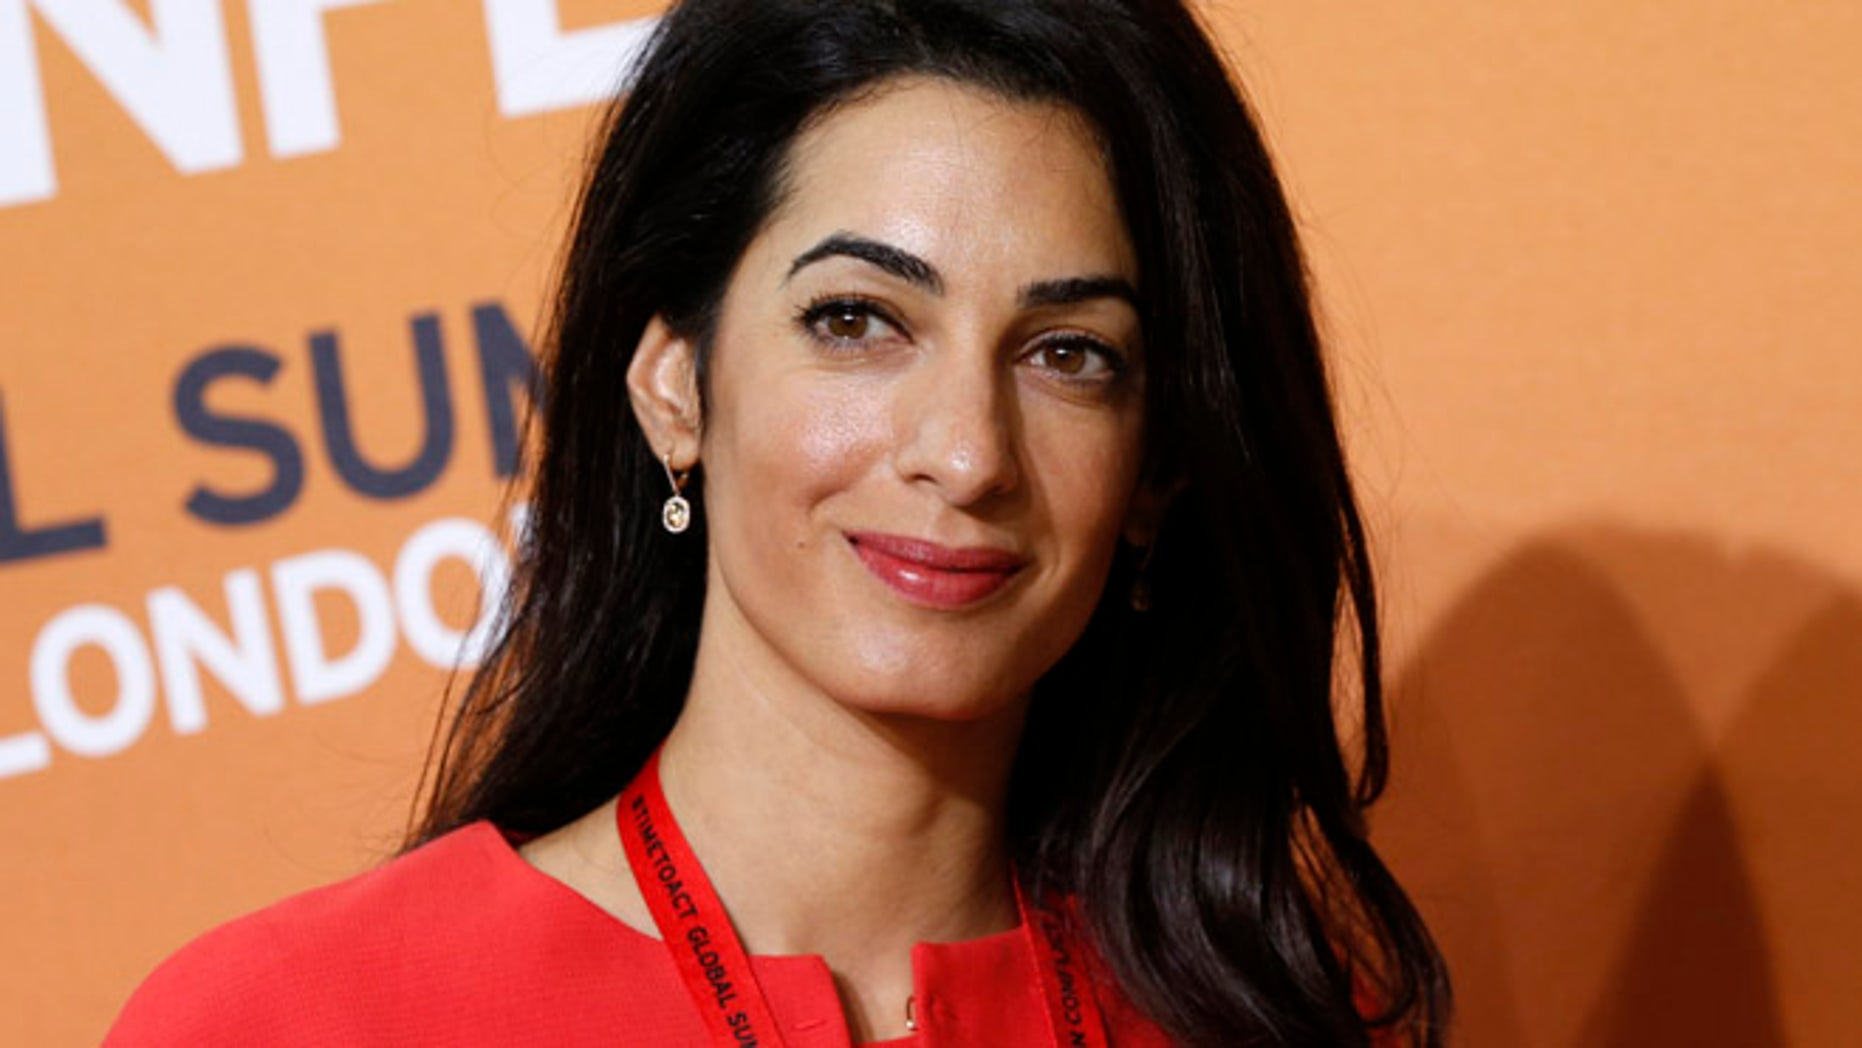 Human rights attorney Amal Alamuddin, George Clooney's fiancée, turned down a seat on a UN committee investigating human rights violations, paving the way for a controversial ex-judge to take the spot. (AP)